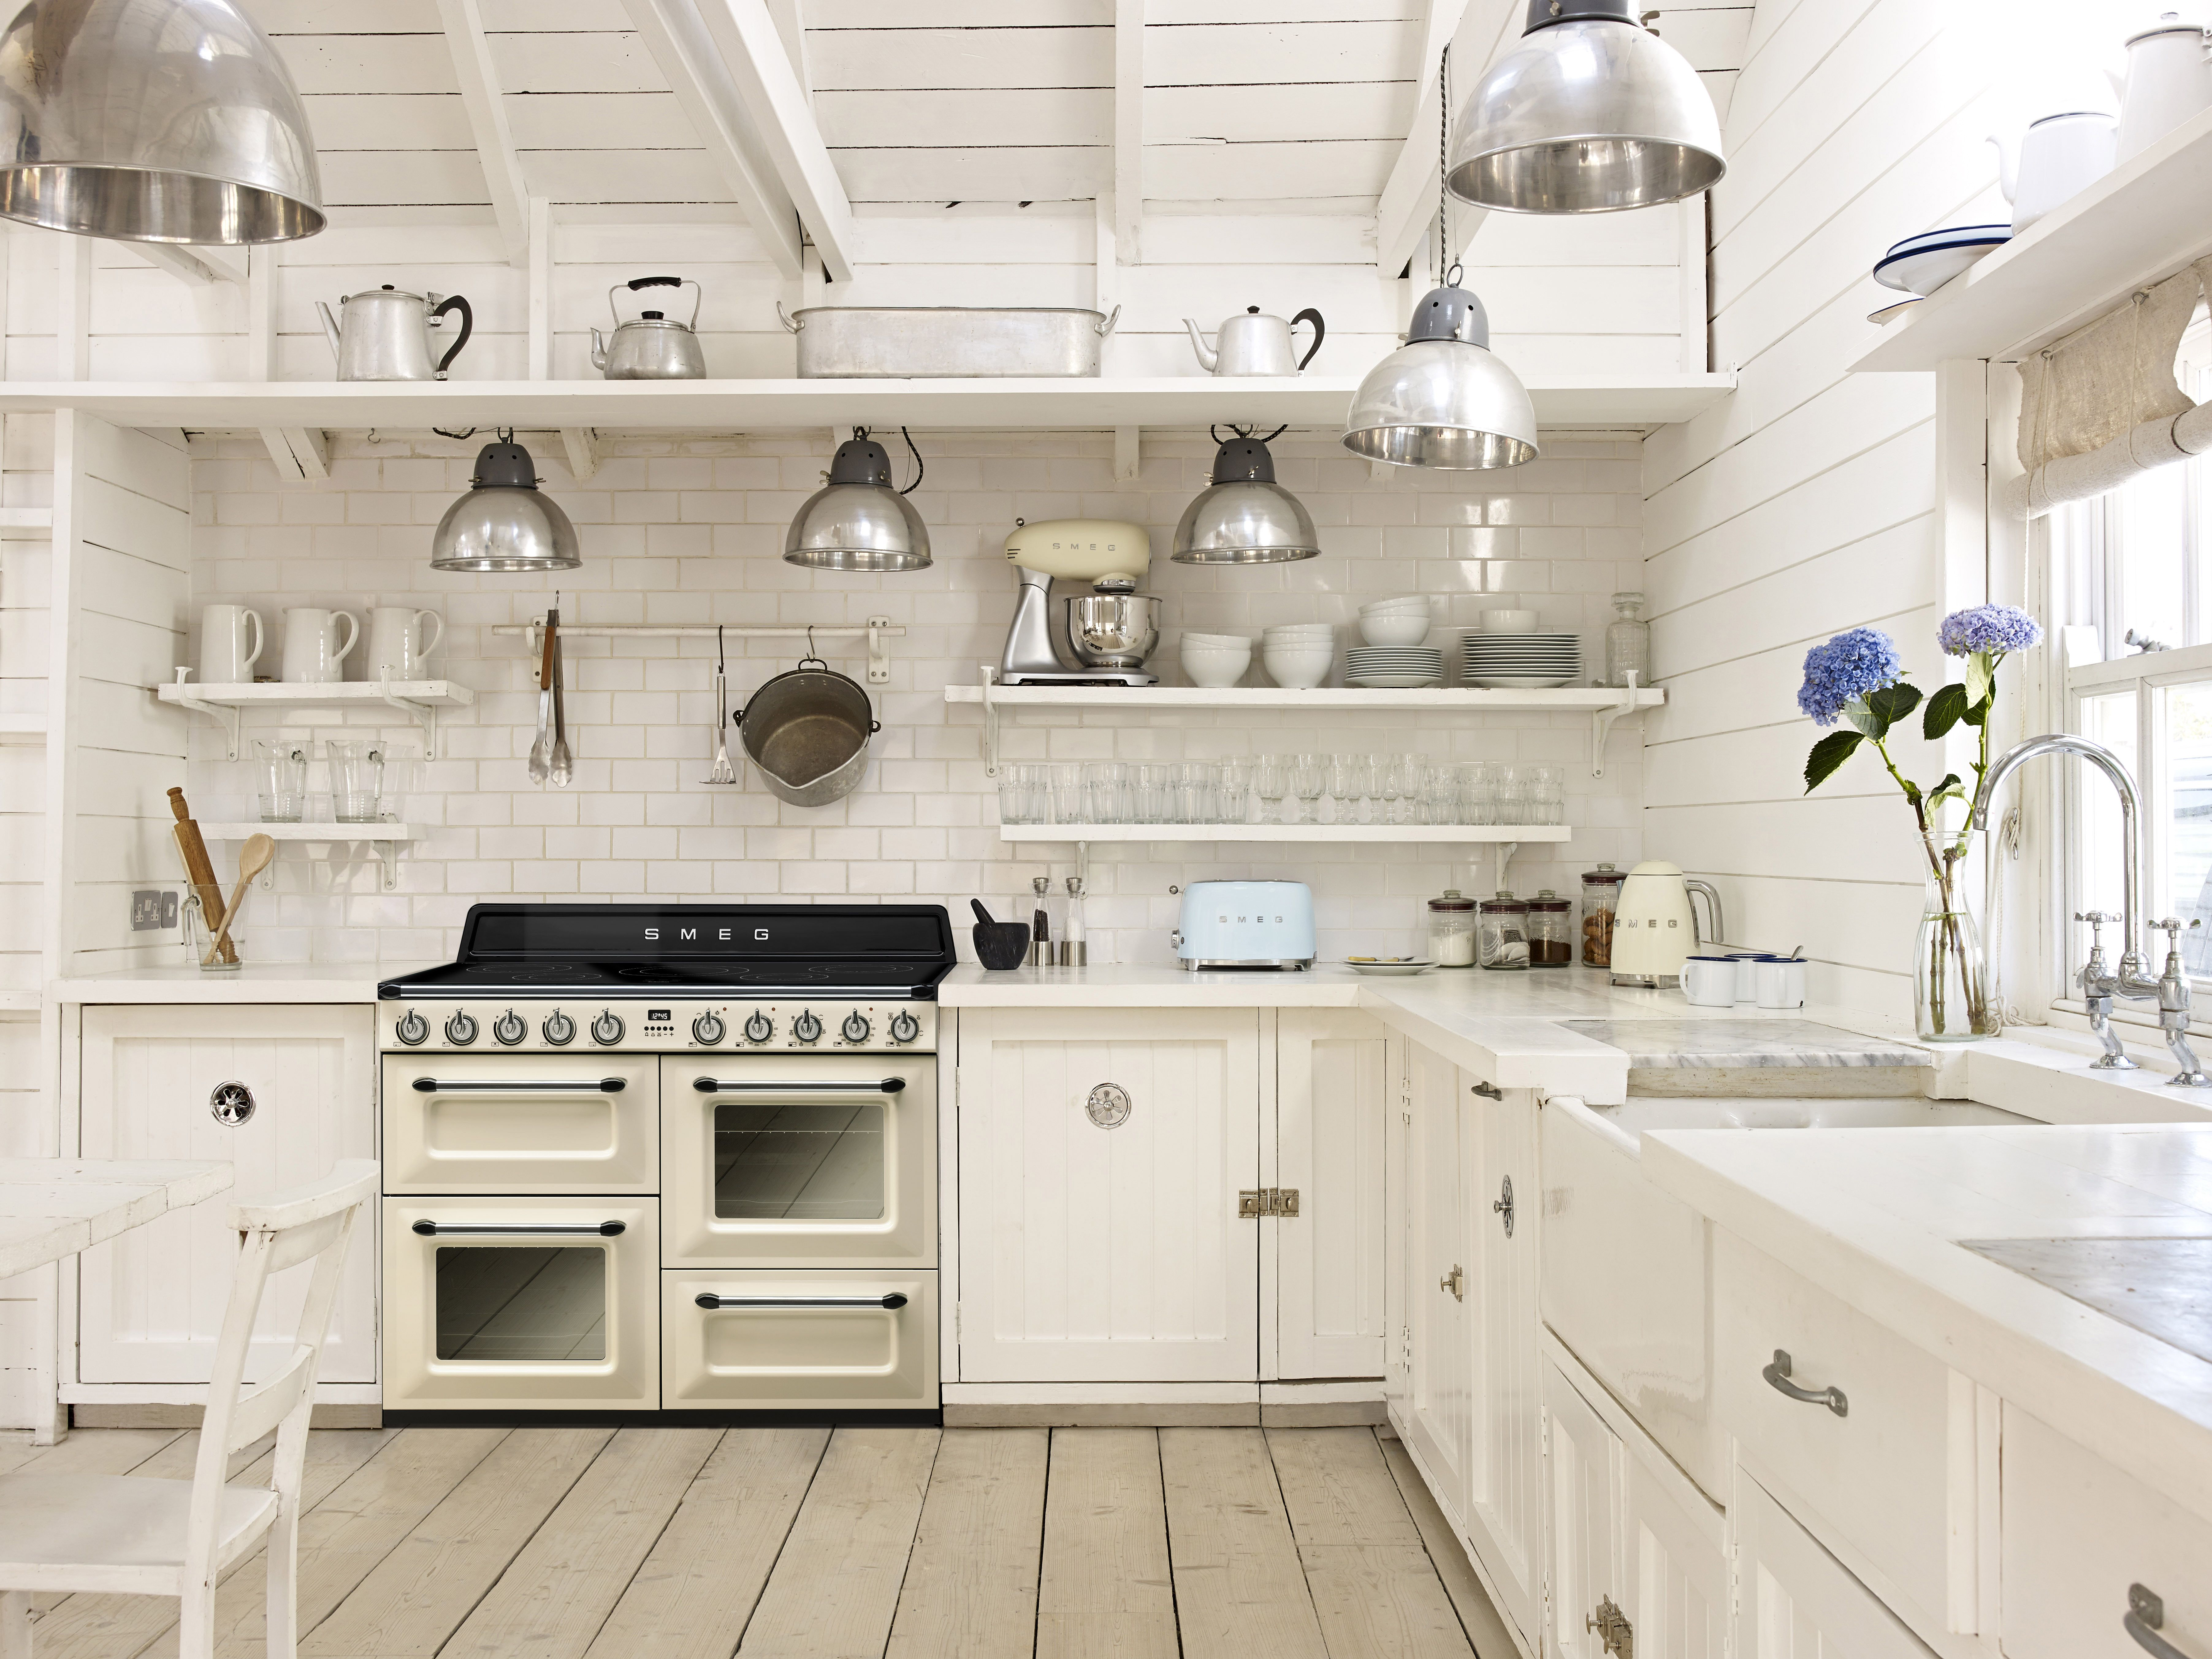 White country kitchen filled with Smeg small appliances